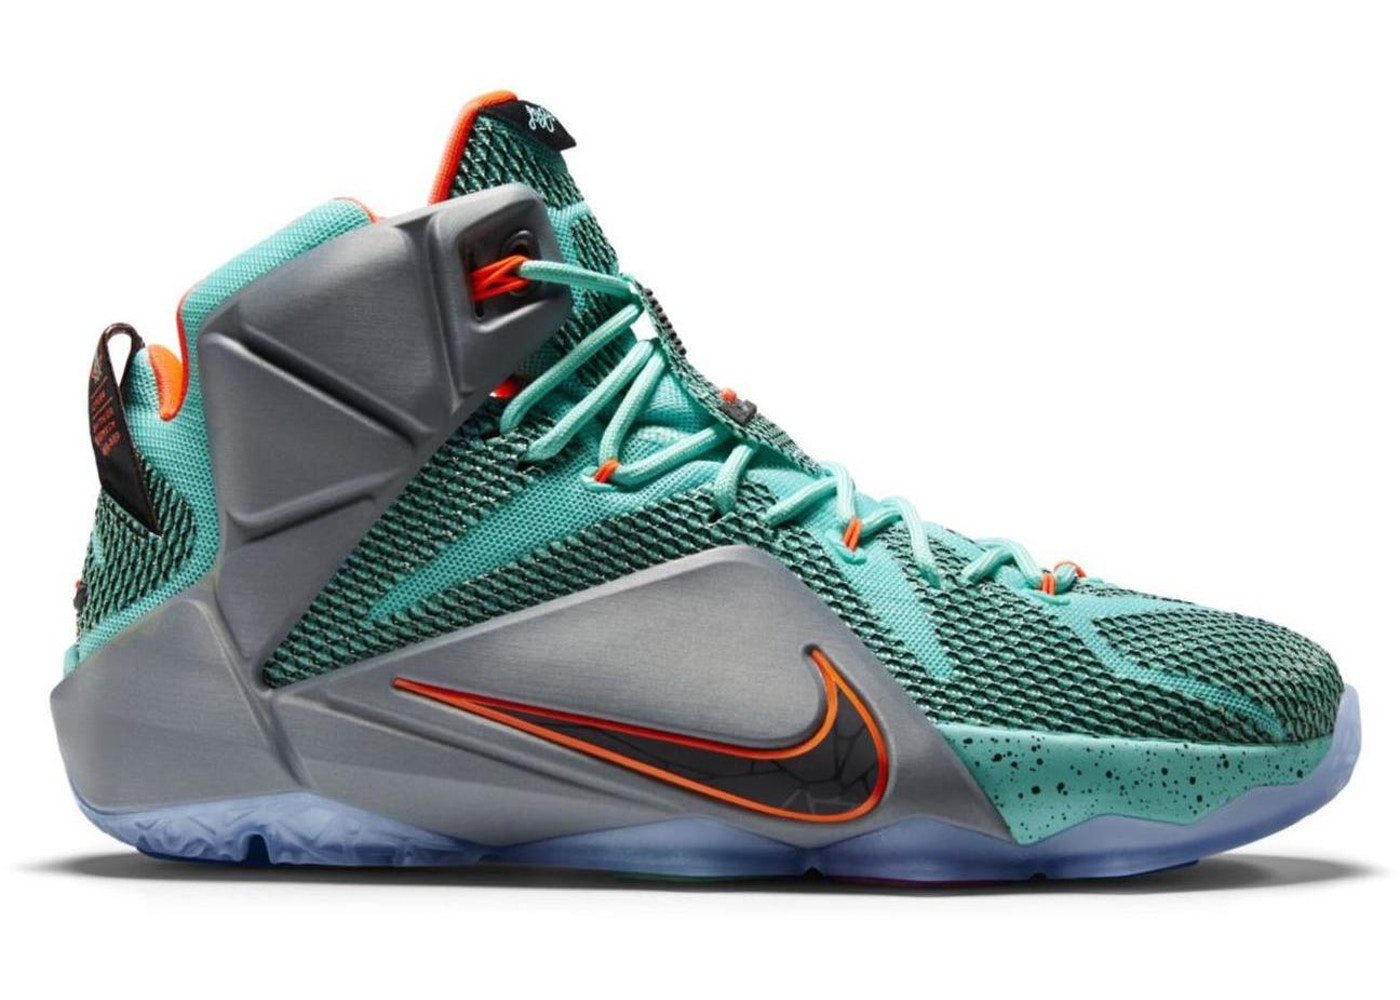 new arrival 67a3d e82dc Buy Nike LeBron 12 Shoes & Deadstock Sneakers